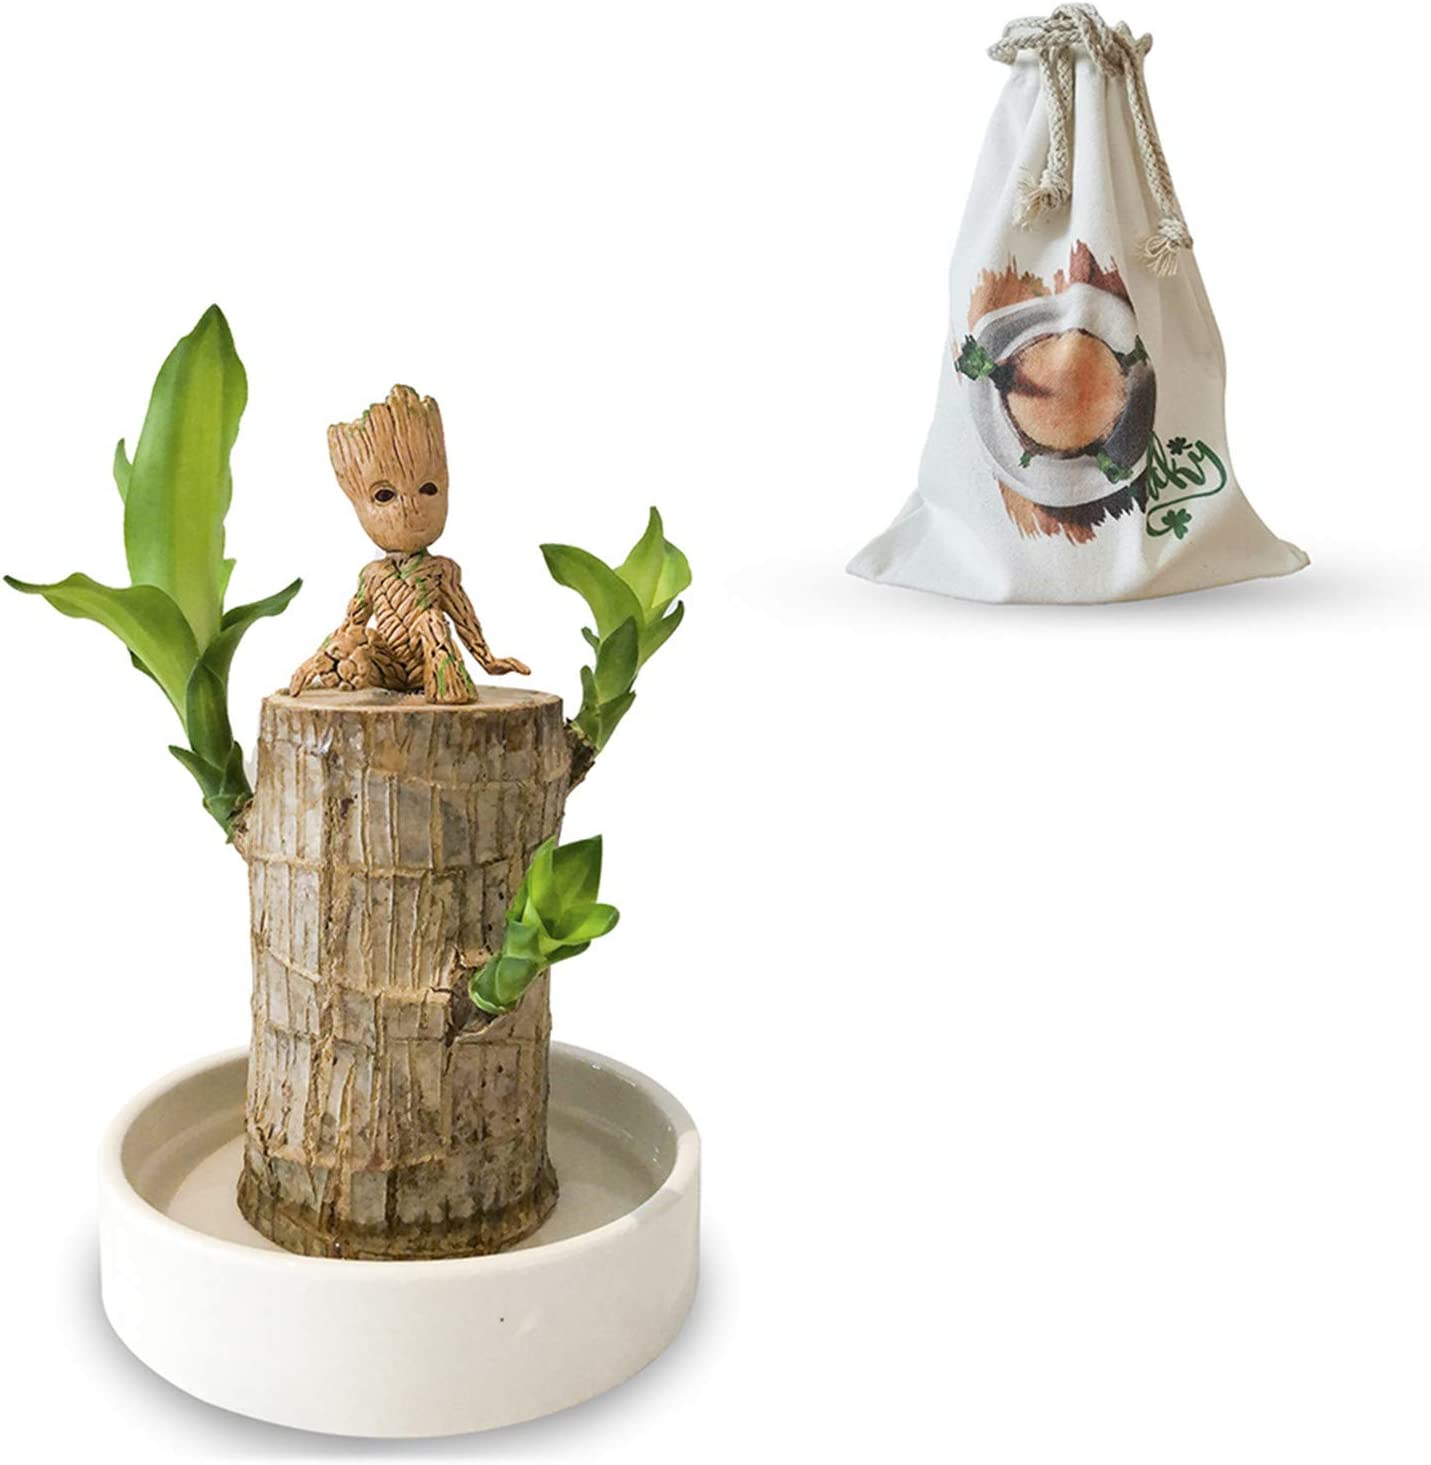 Log with Basin ,Office Desktop Plants 5-8 cm in Diameter Cafe Decoration Indoor Plant Ornaments YLKJSTYS Brazilian Wood Potted Plants,Mini Brazil Lucky Badan Wood,Clean Air Home Hotel Garden